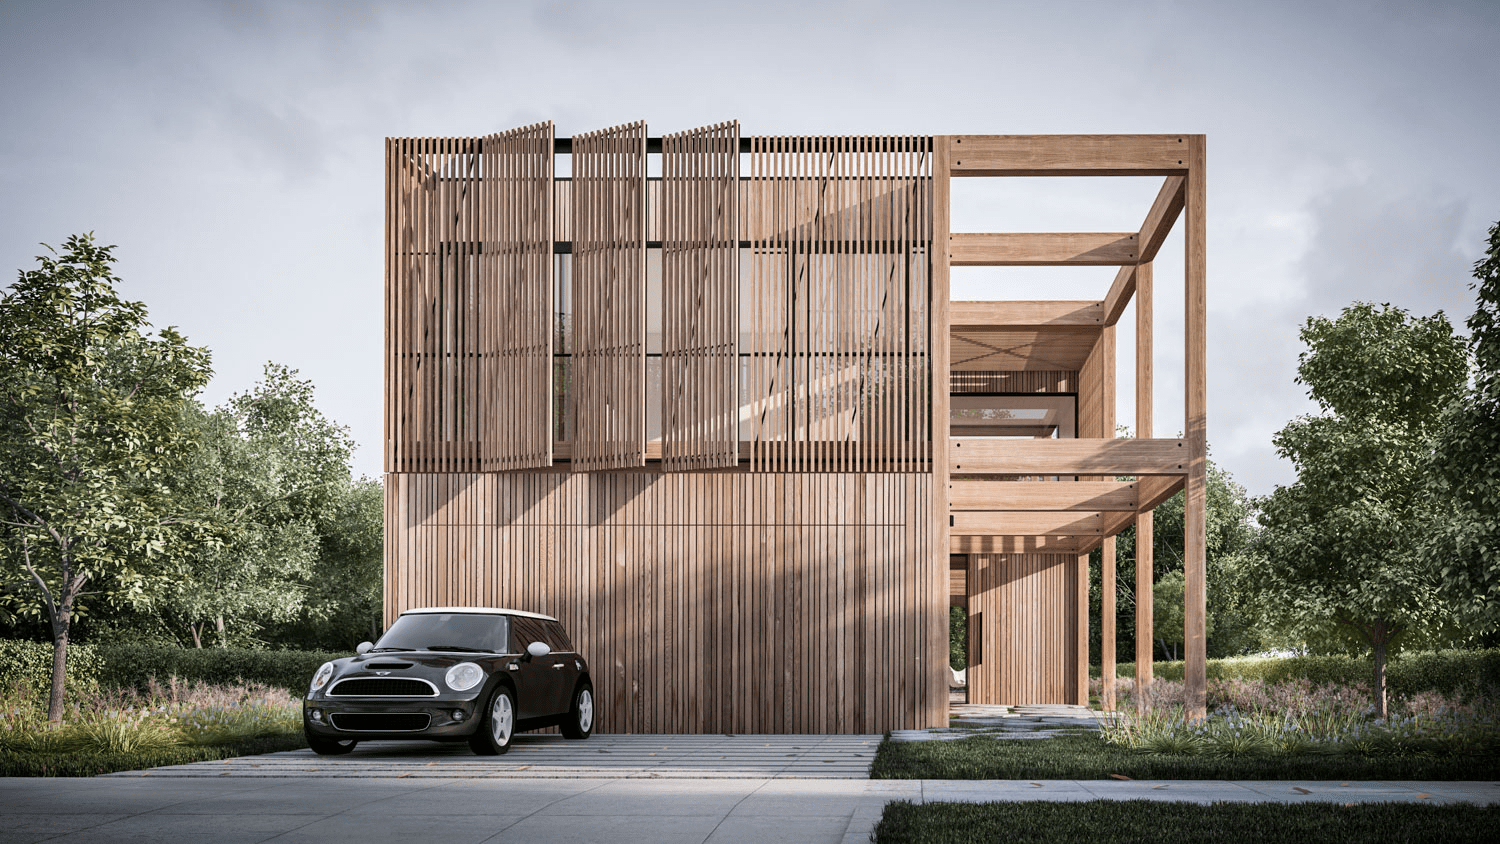 Lam gỗ thanh dọc trong thiết kế The Frame House của Auhaus Architecture